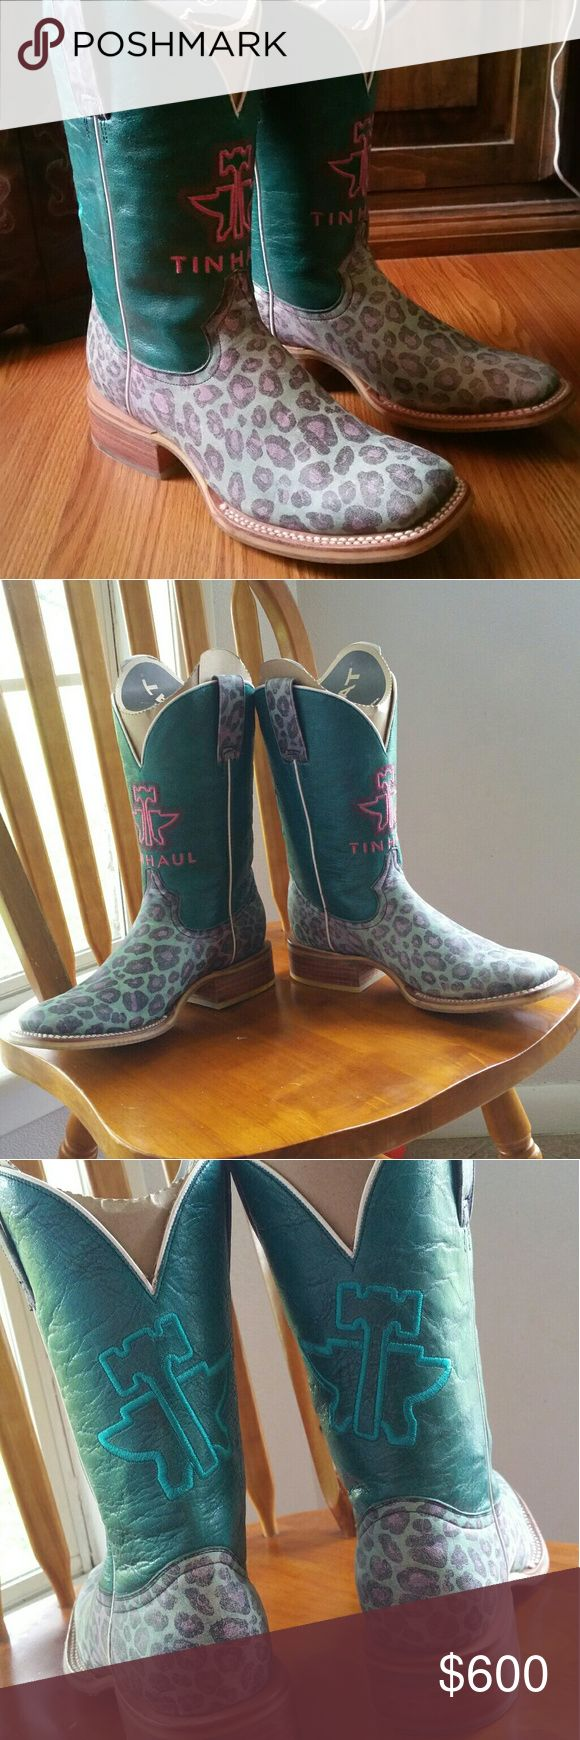 ?? TIN HAUL ?? Tin haul boots size 7. Turquoise leopard print and pink and turquoise stitching on the tops. SUPER CUTE boots and great condition. I haven't worn them in a long time but they have been worn a few times, so they have a little wear that you can see in the pics. Priced high to see if anyone wants to trade and I'm open to offers (: Ariat Shoes Heeled Boots